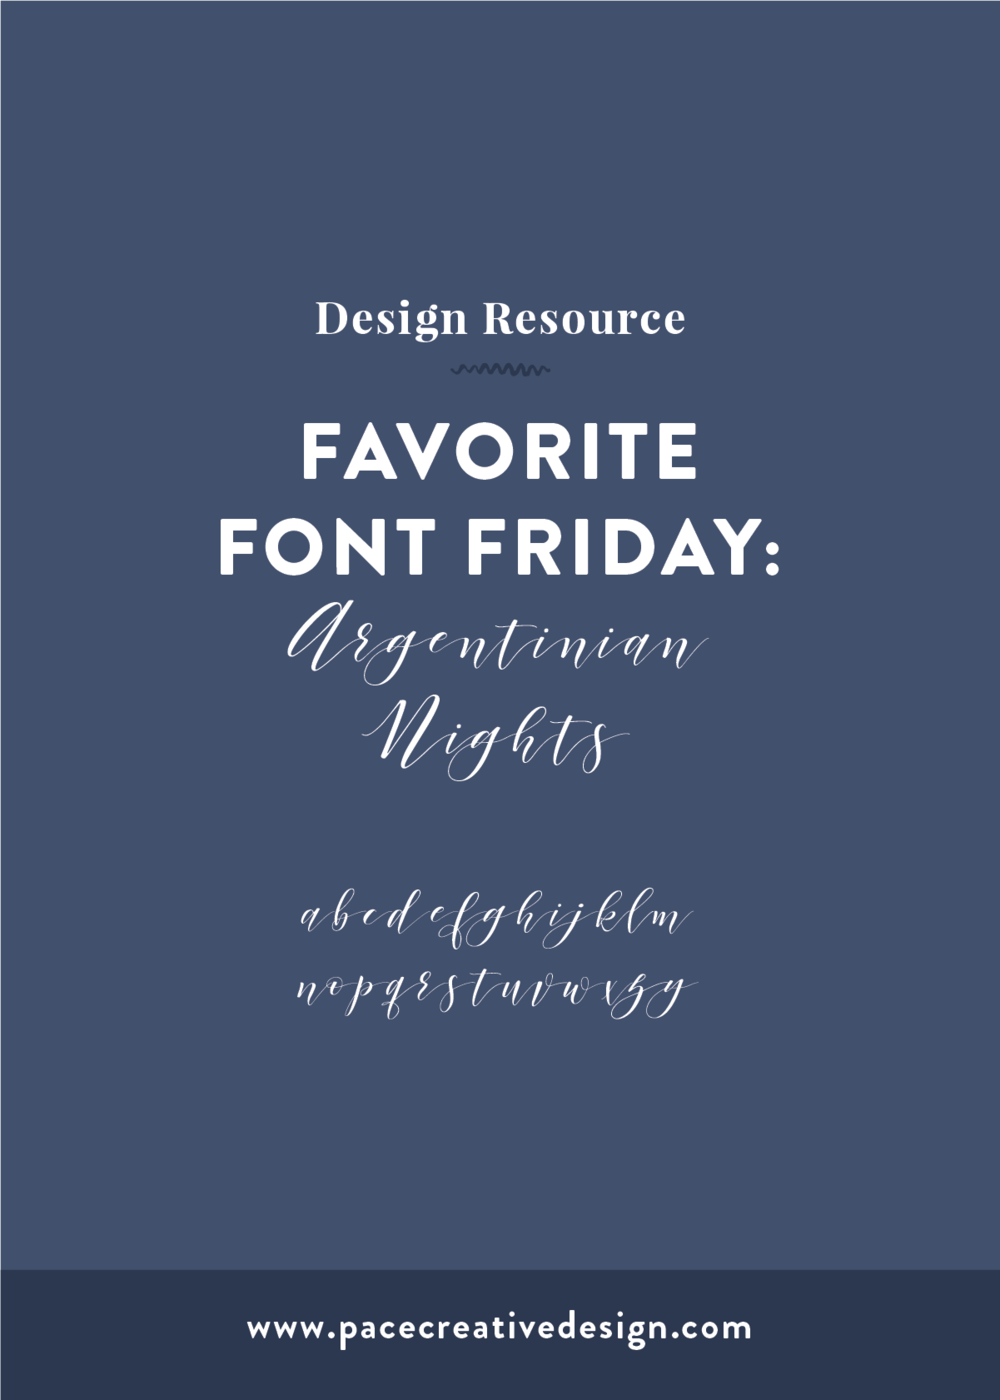 Free Font Friday No. 3: Argentinian Nights | Pace Creative Design Studio